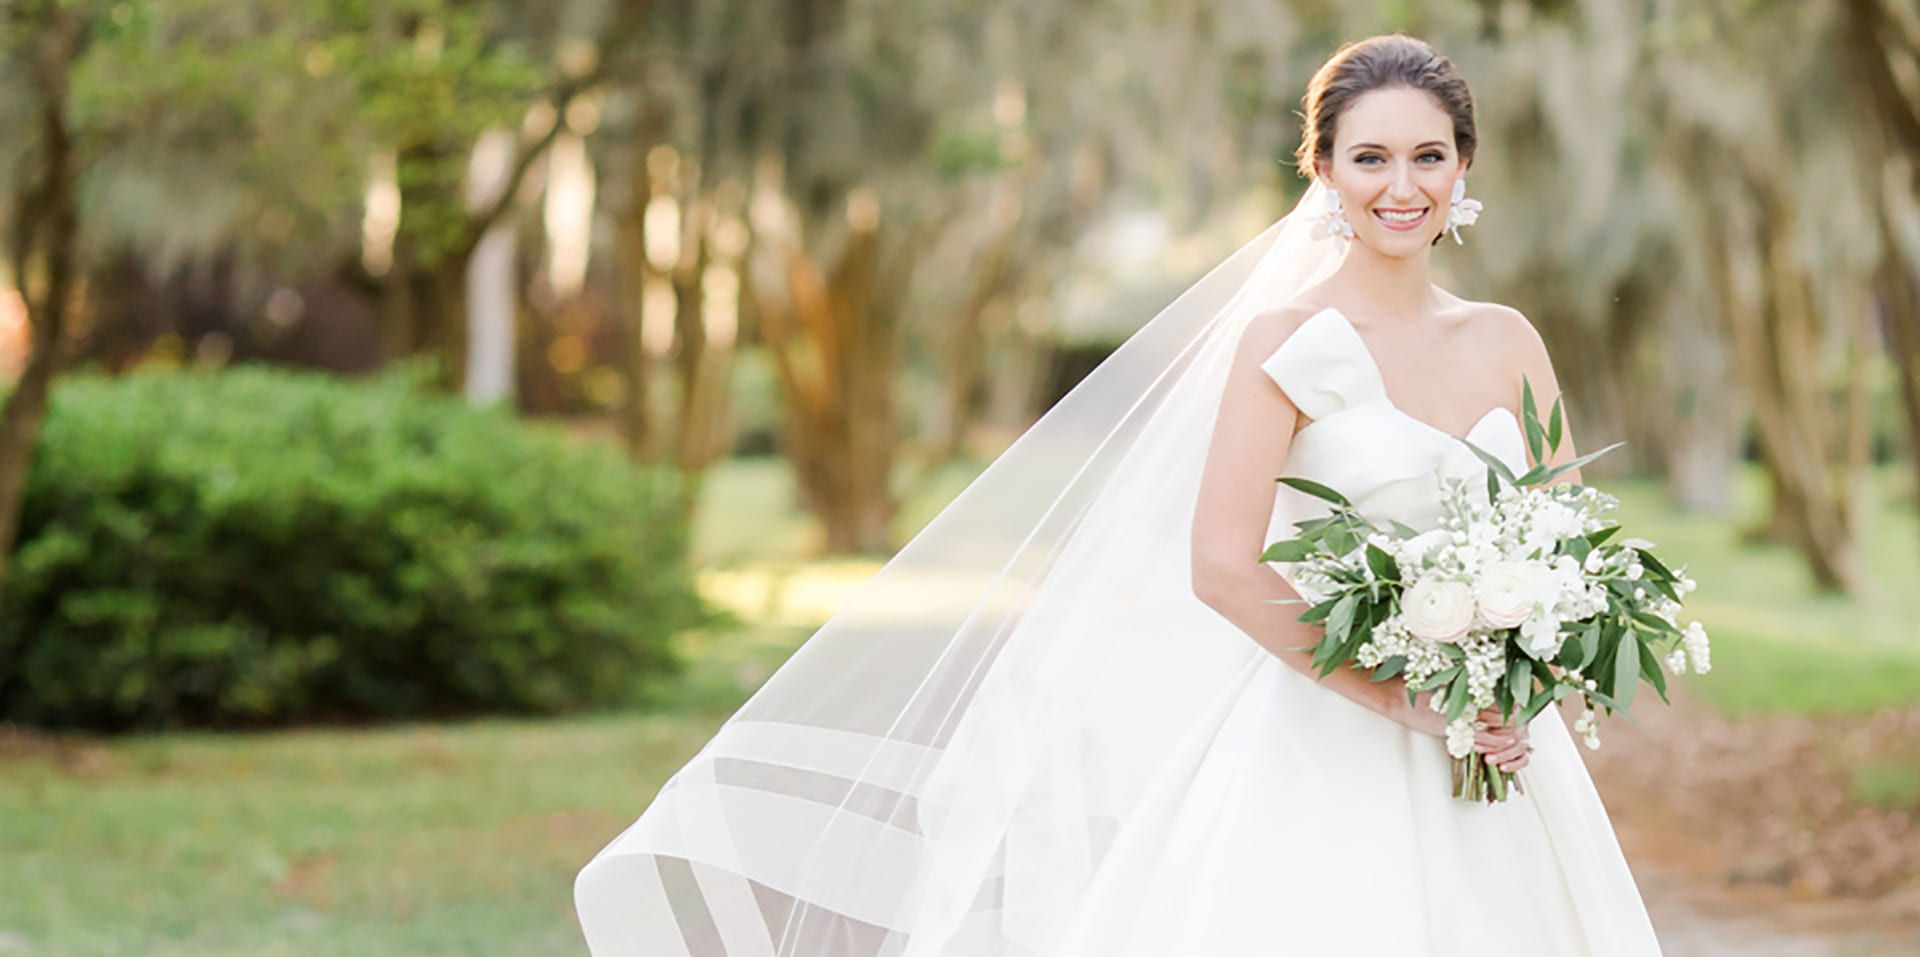 Image of Bride with Tree Canopy behind